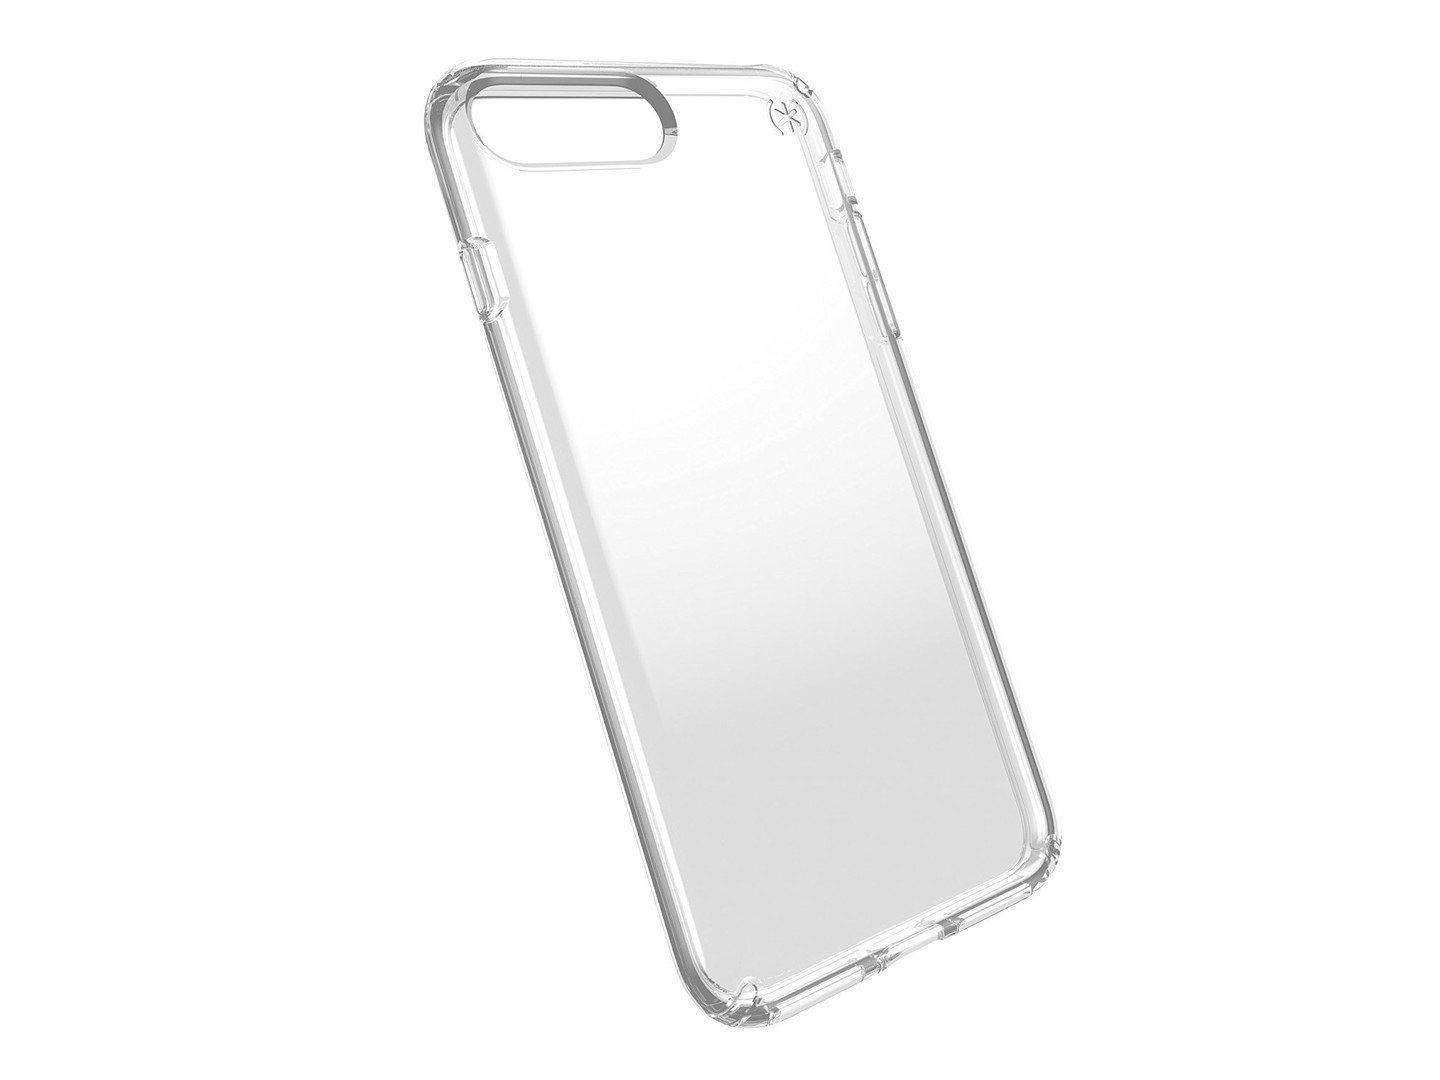 35bc11bbfe 5 Clear Cases to Show Off Your iPhone 7 or iPhone 7 Plus